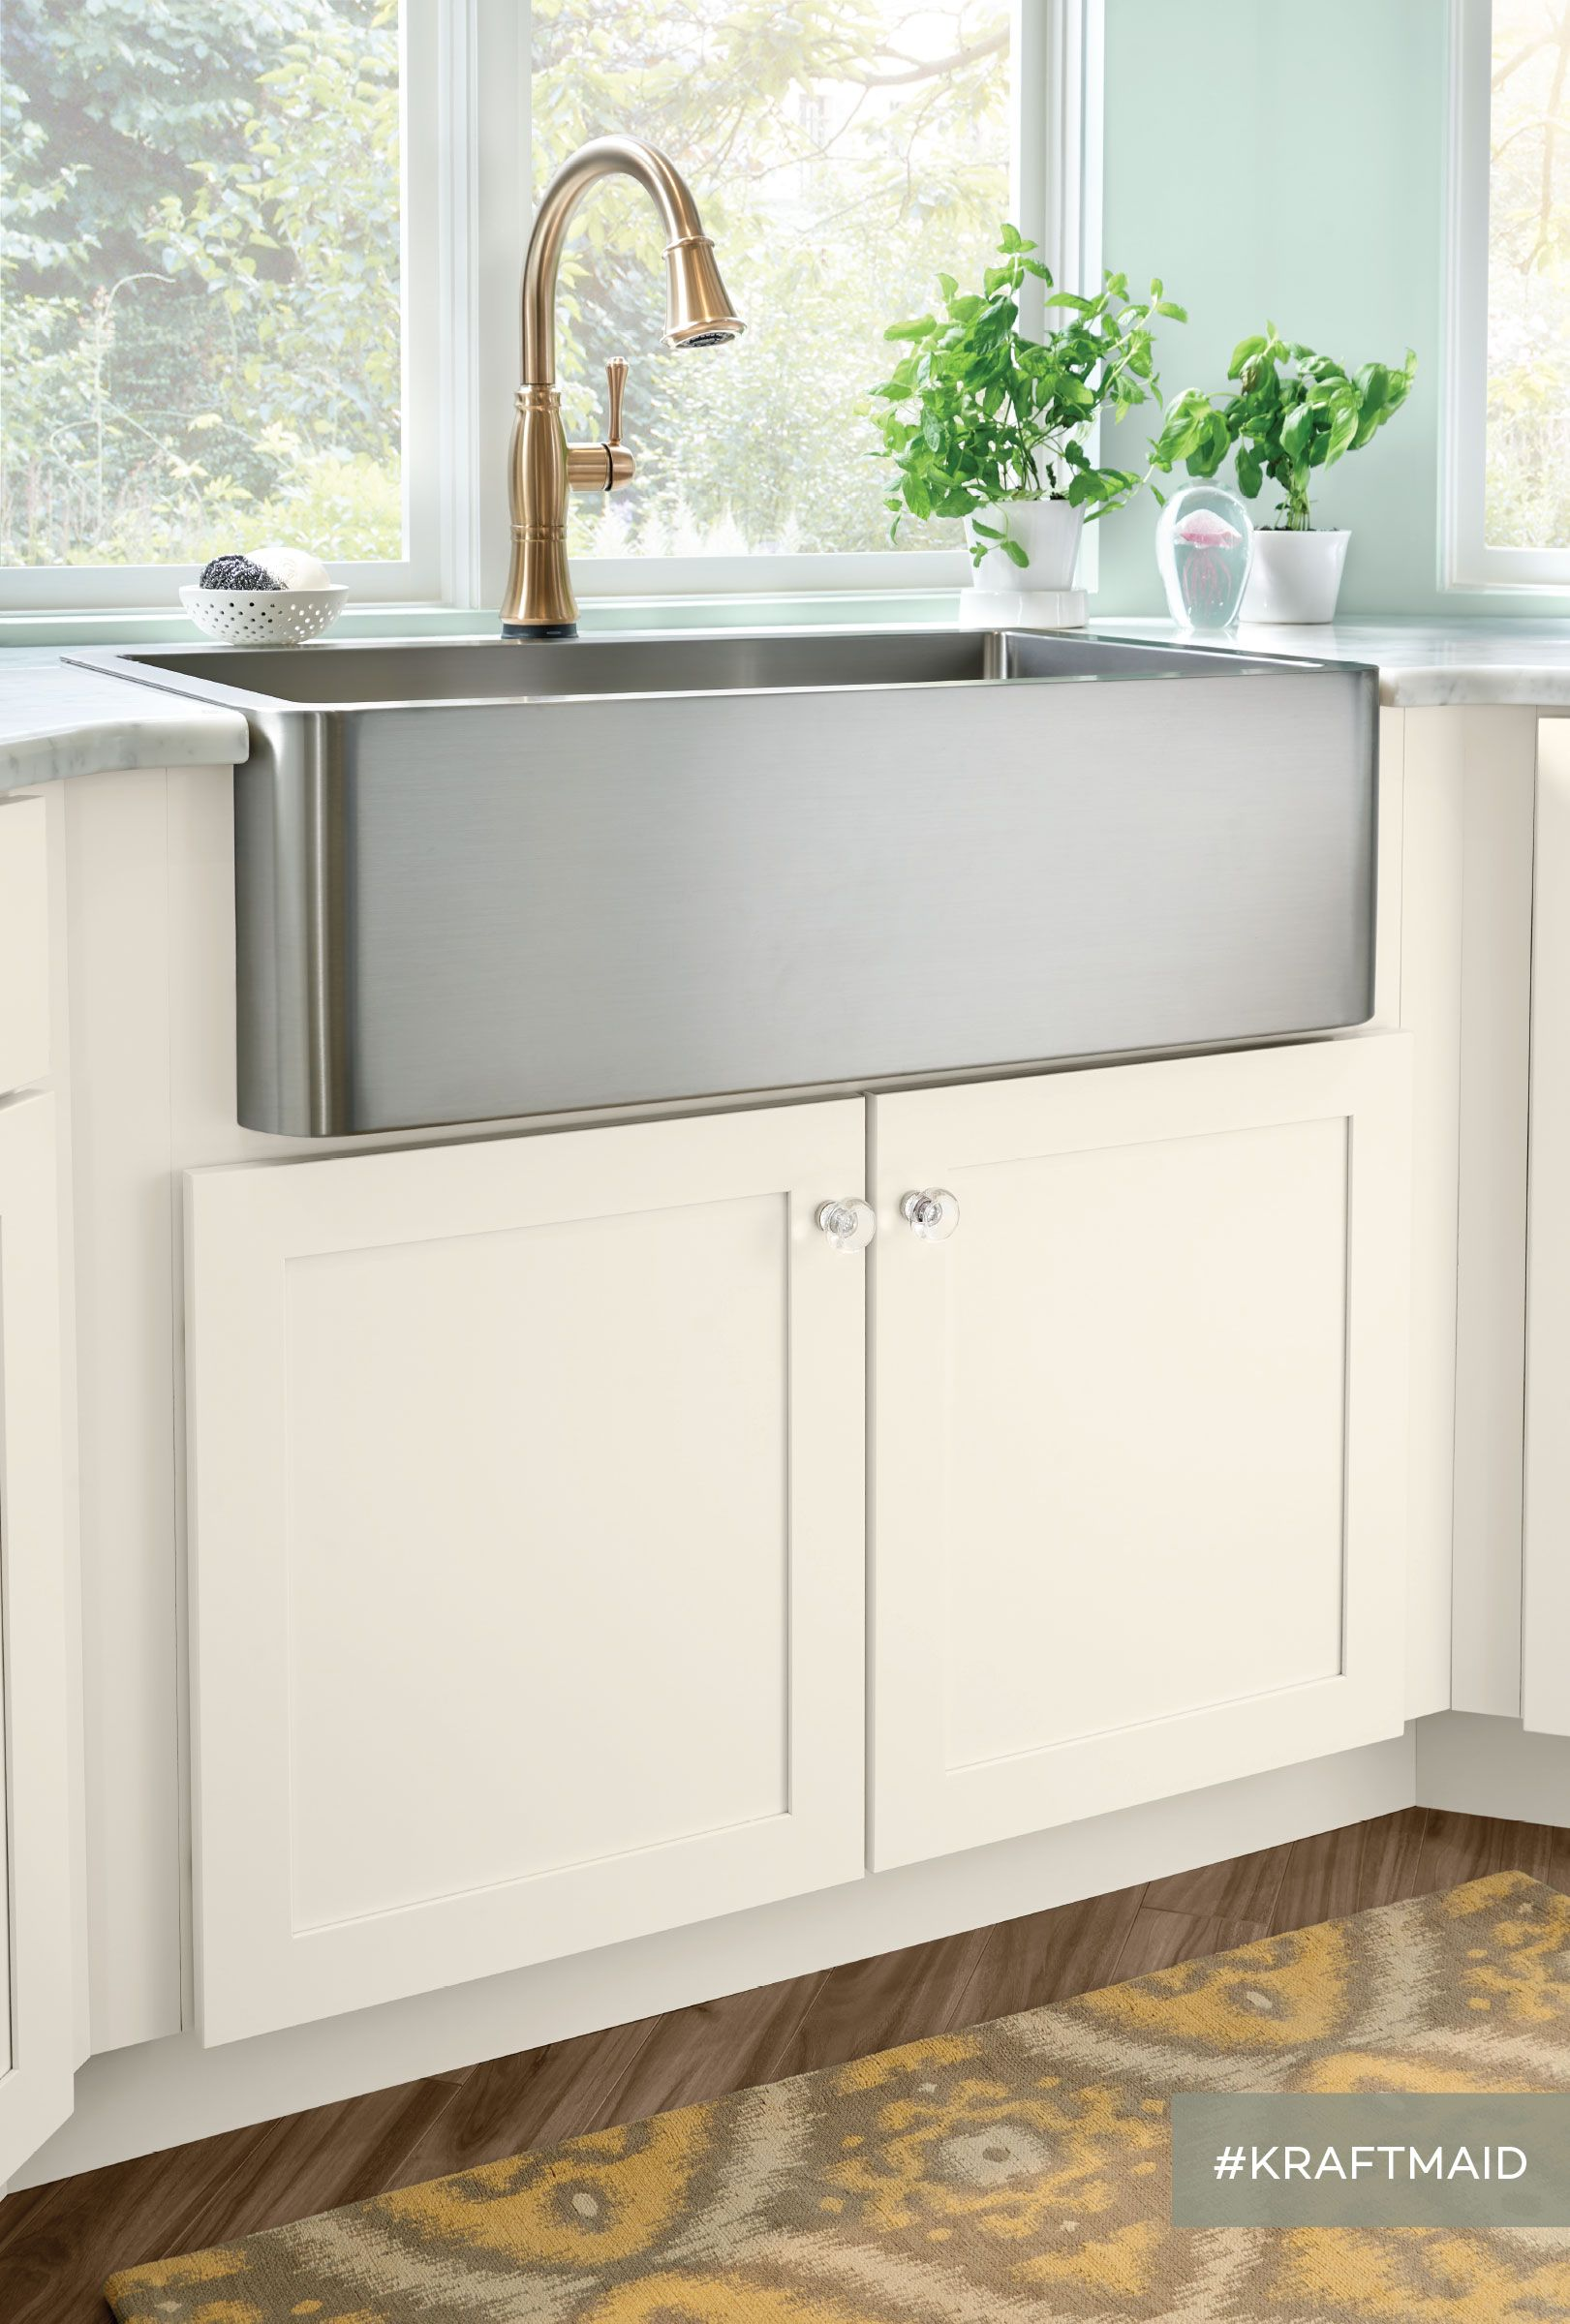 An Apron Front Sink Base is just one example of the many kitchen